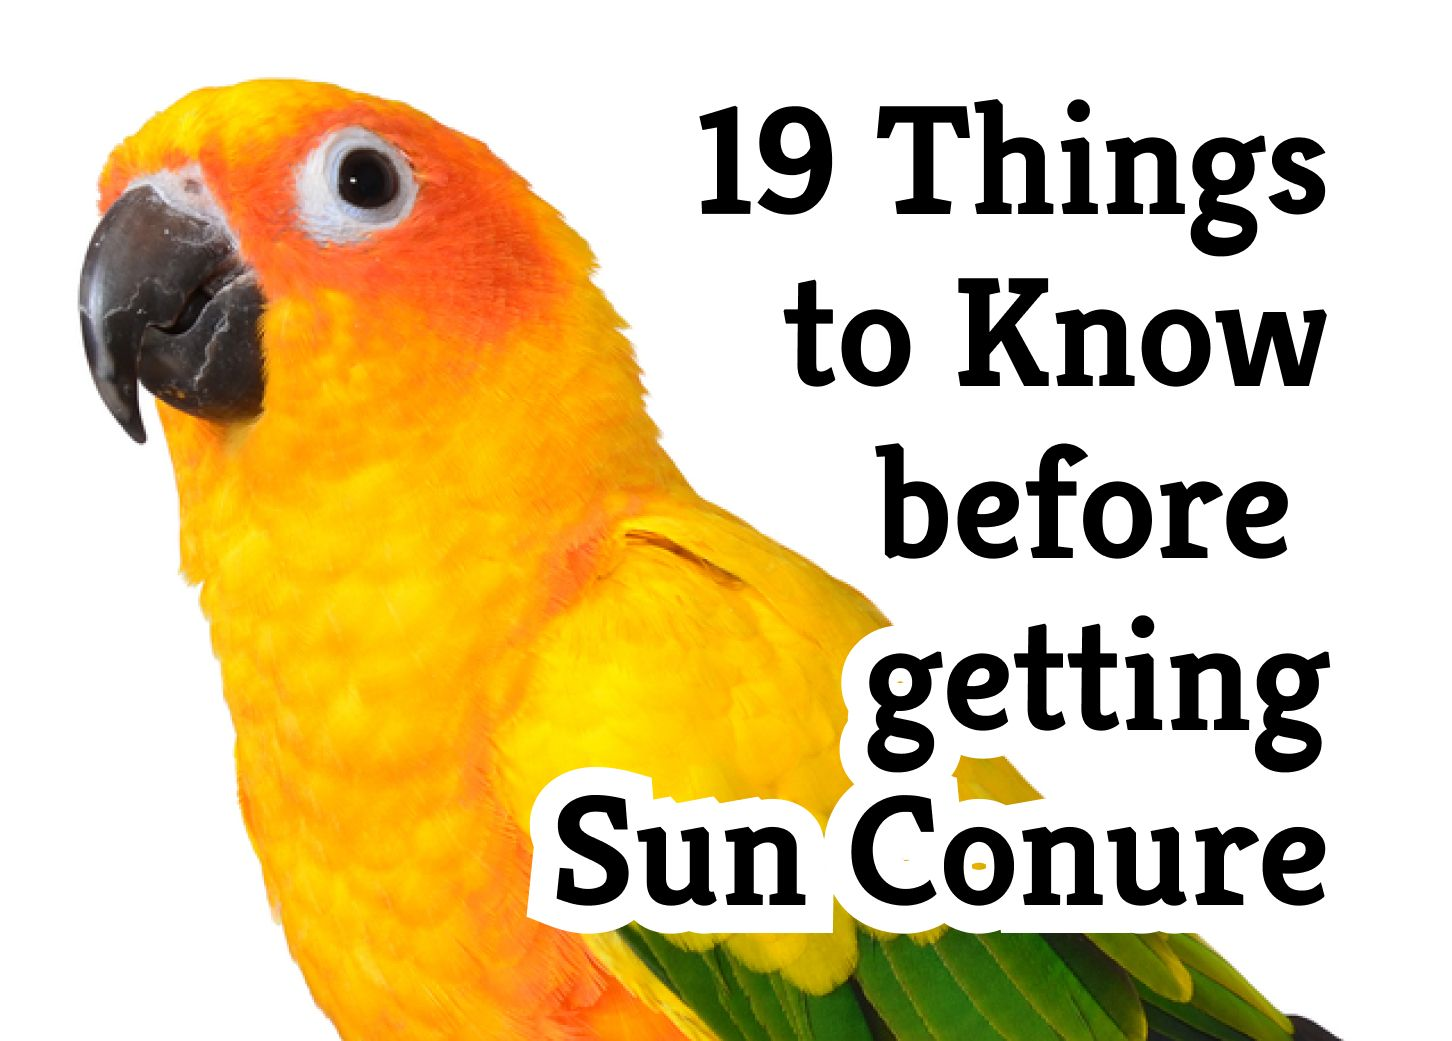 19 Things to Know Before Getting a Sun Conure